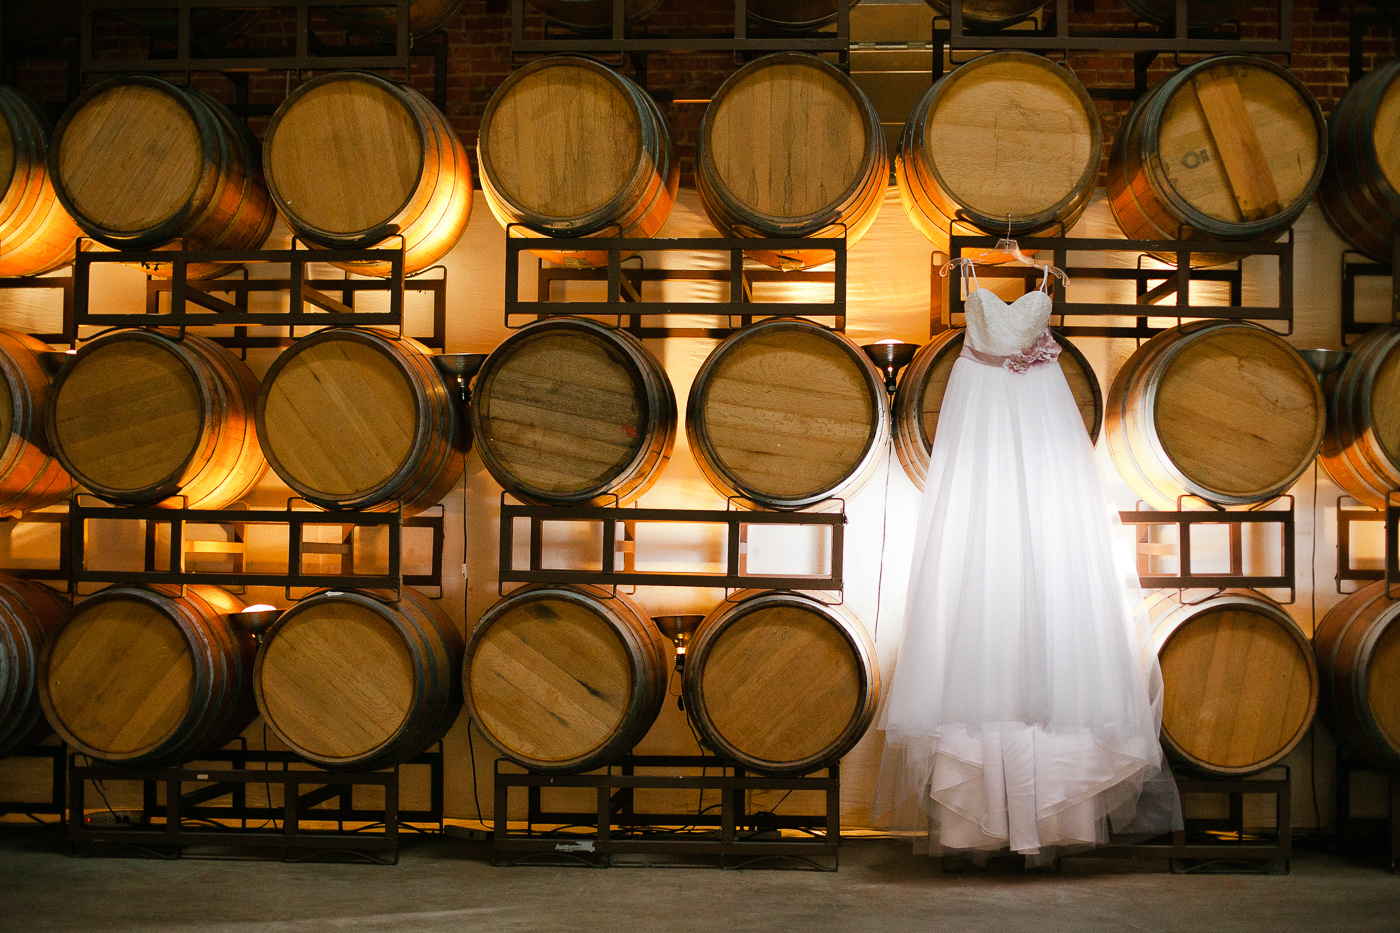 wedding-sugar-mill-old-winery-vinery-barrels-dress